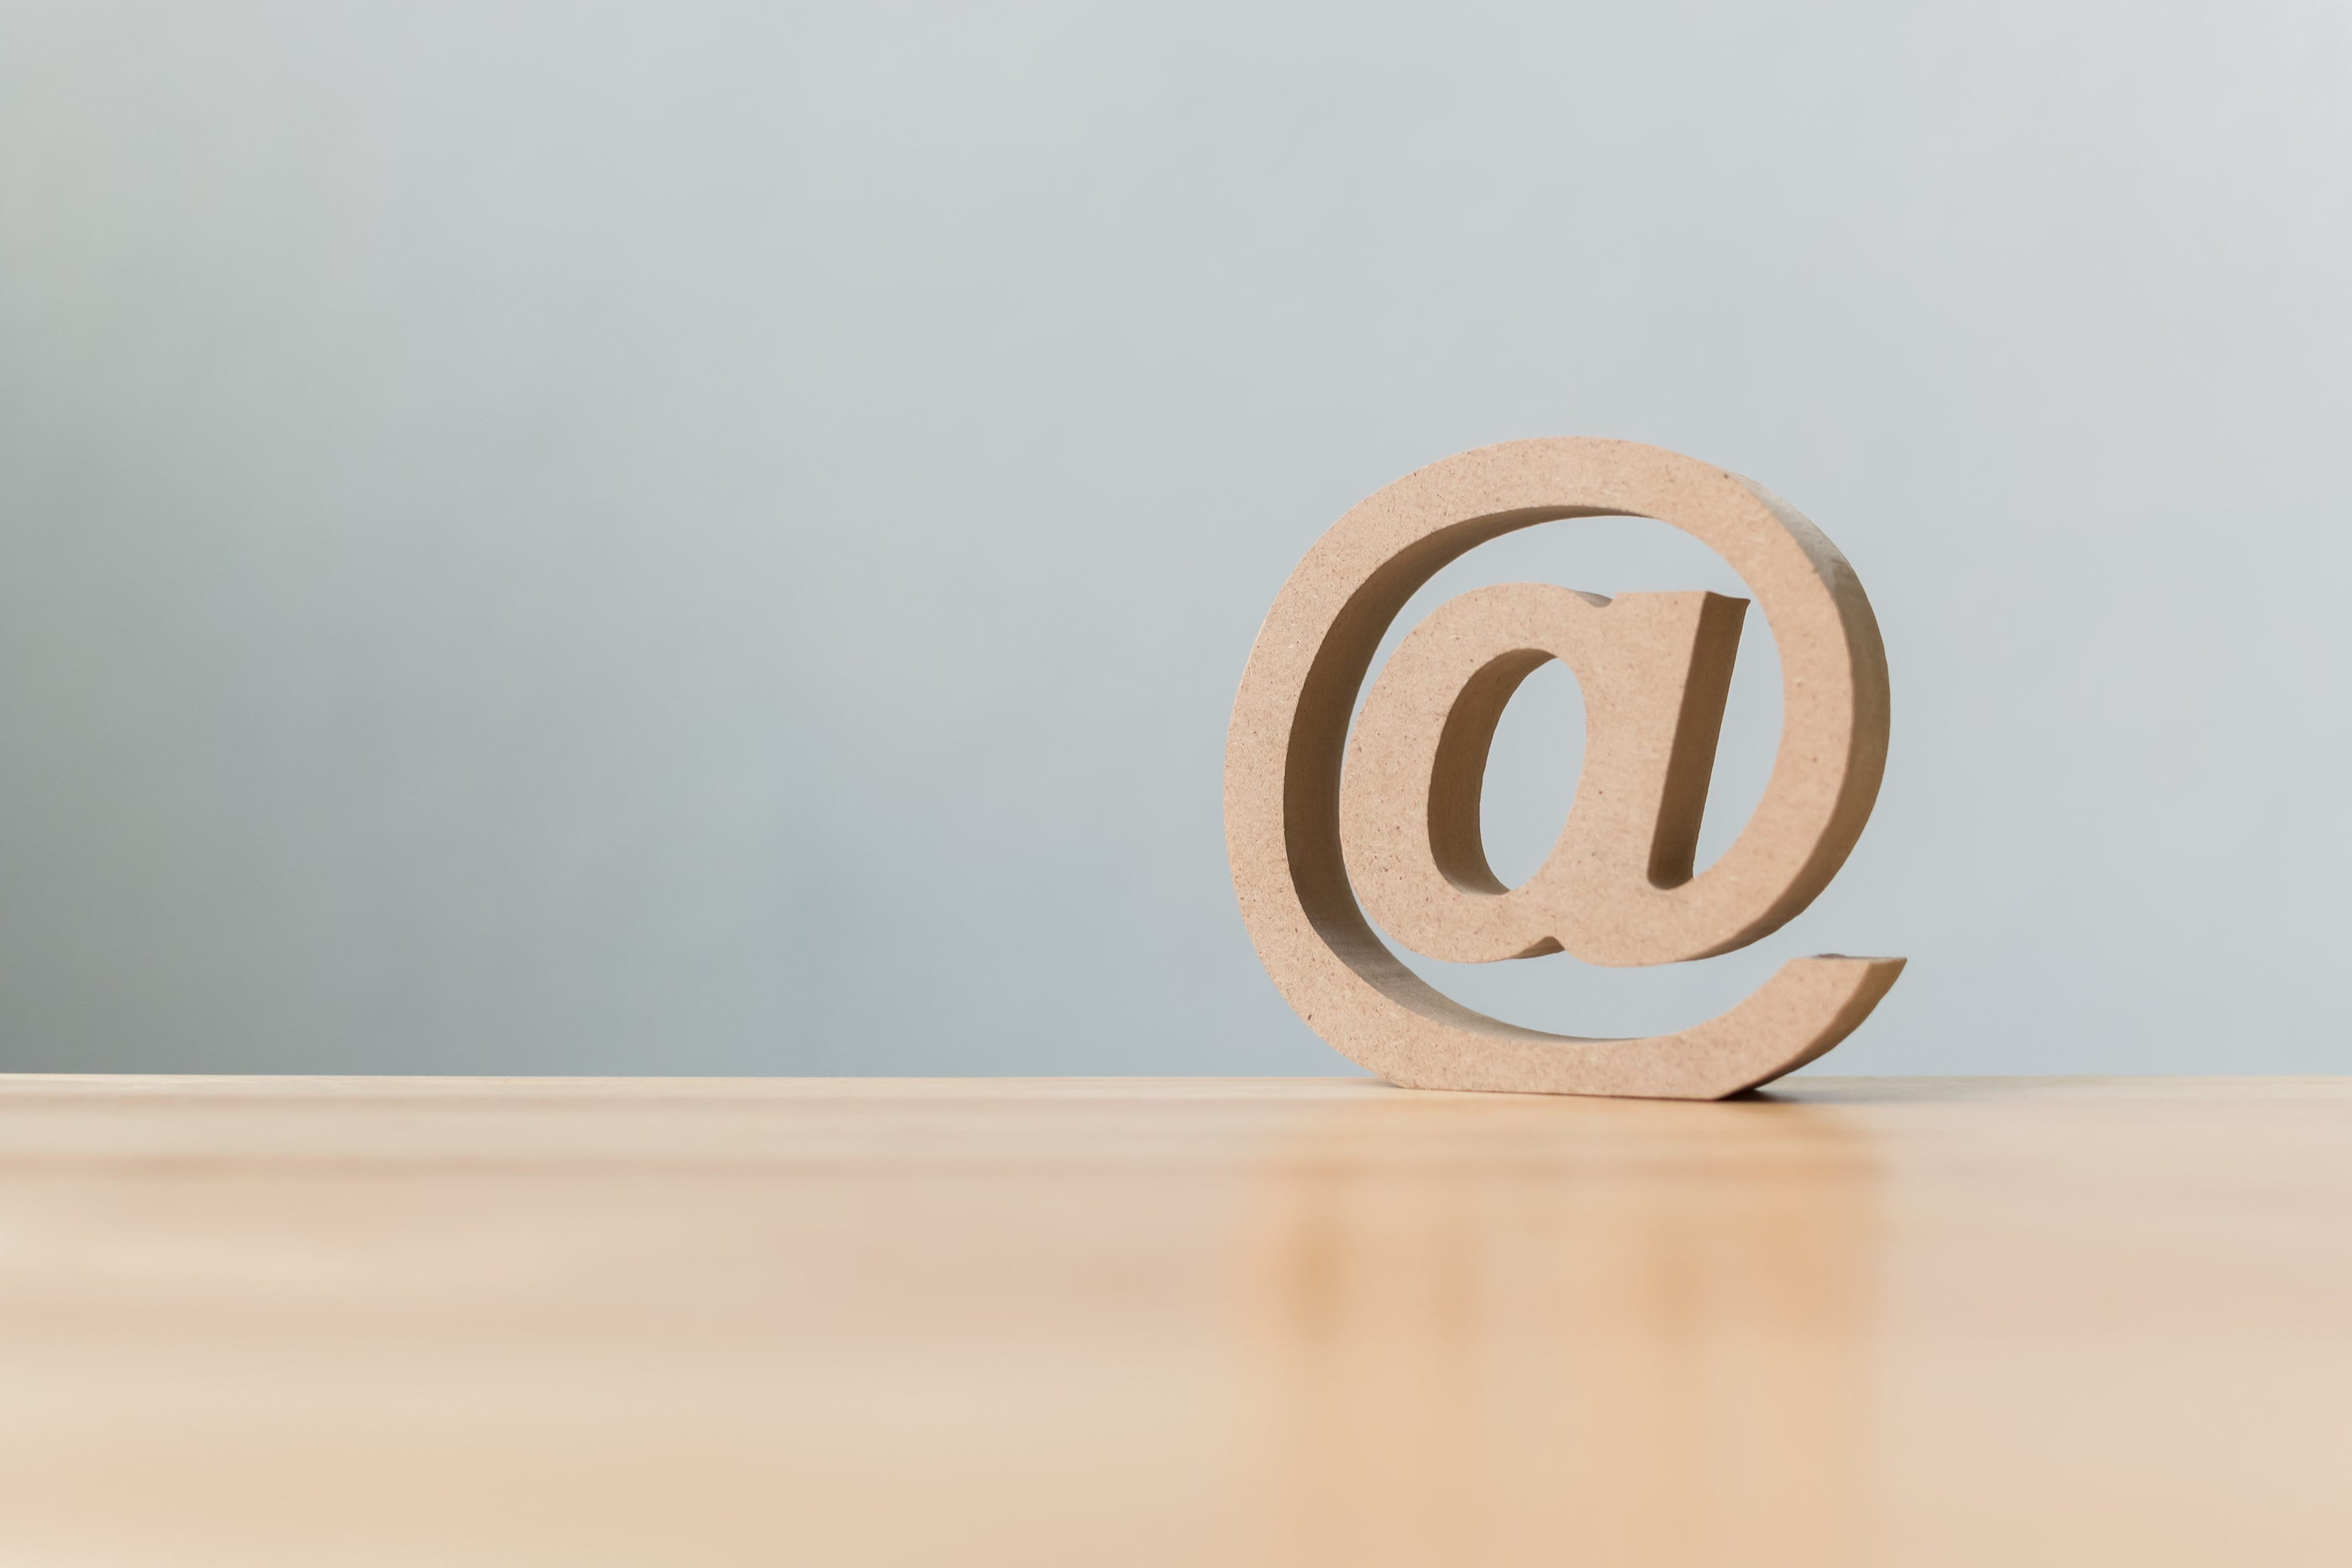 Email address icon wooden symbol Contact us customer service by email concept